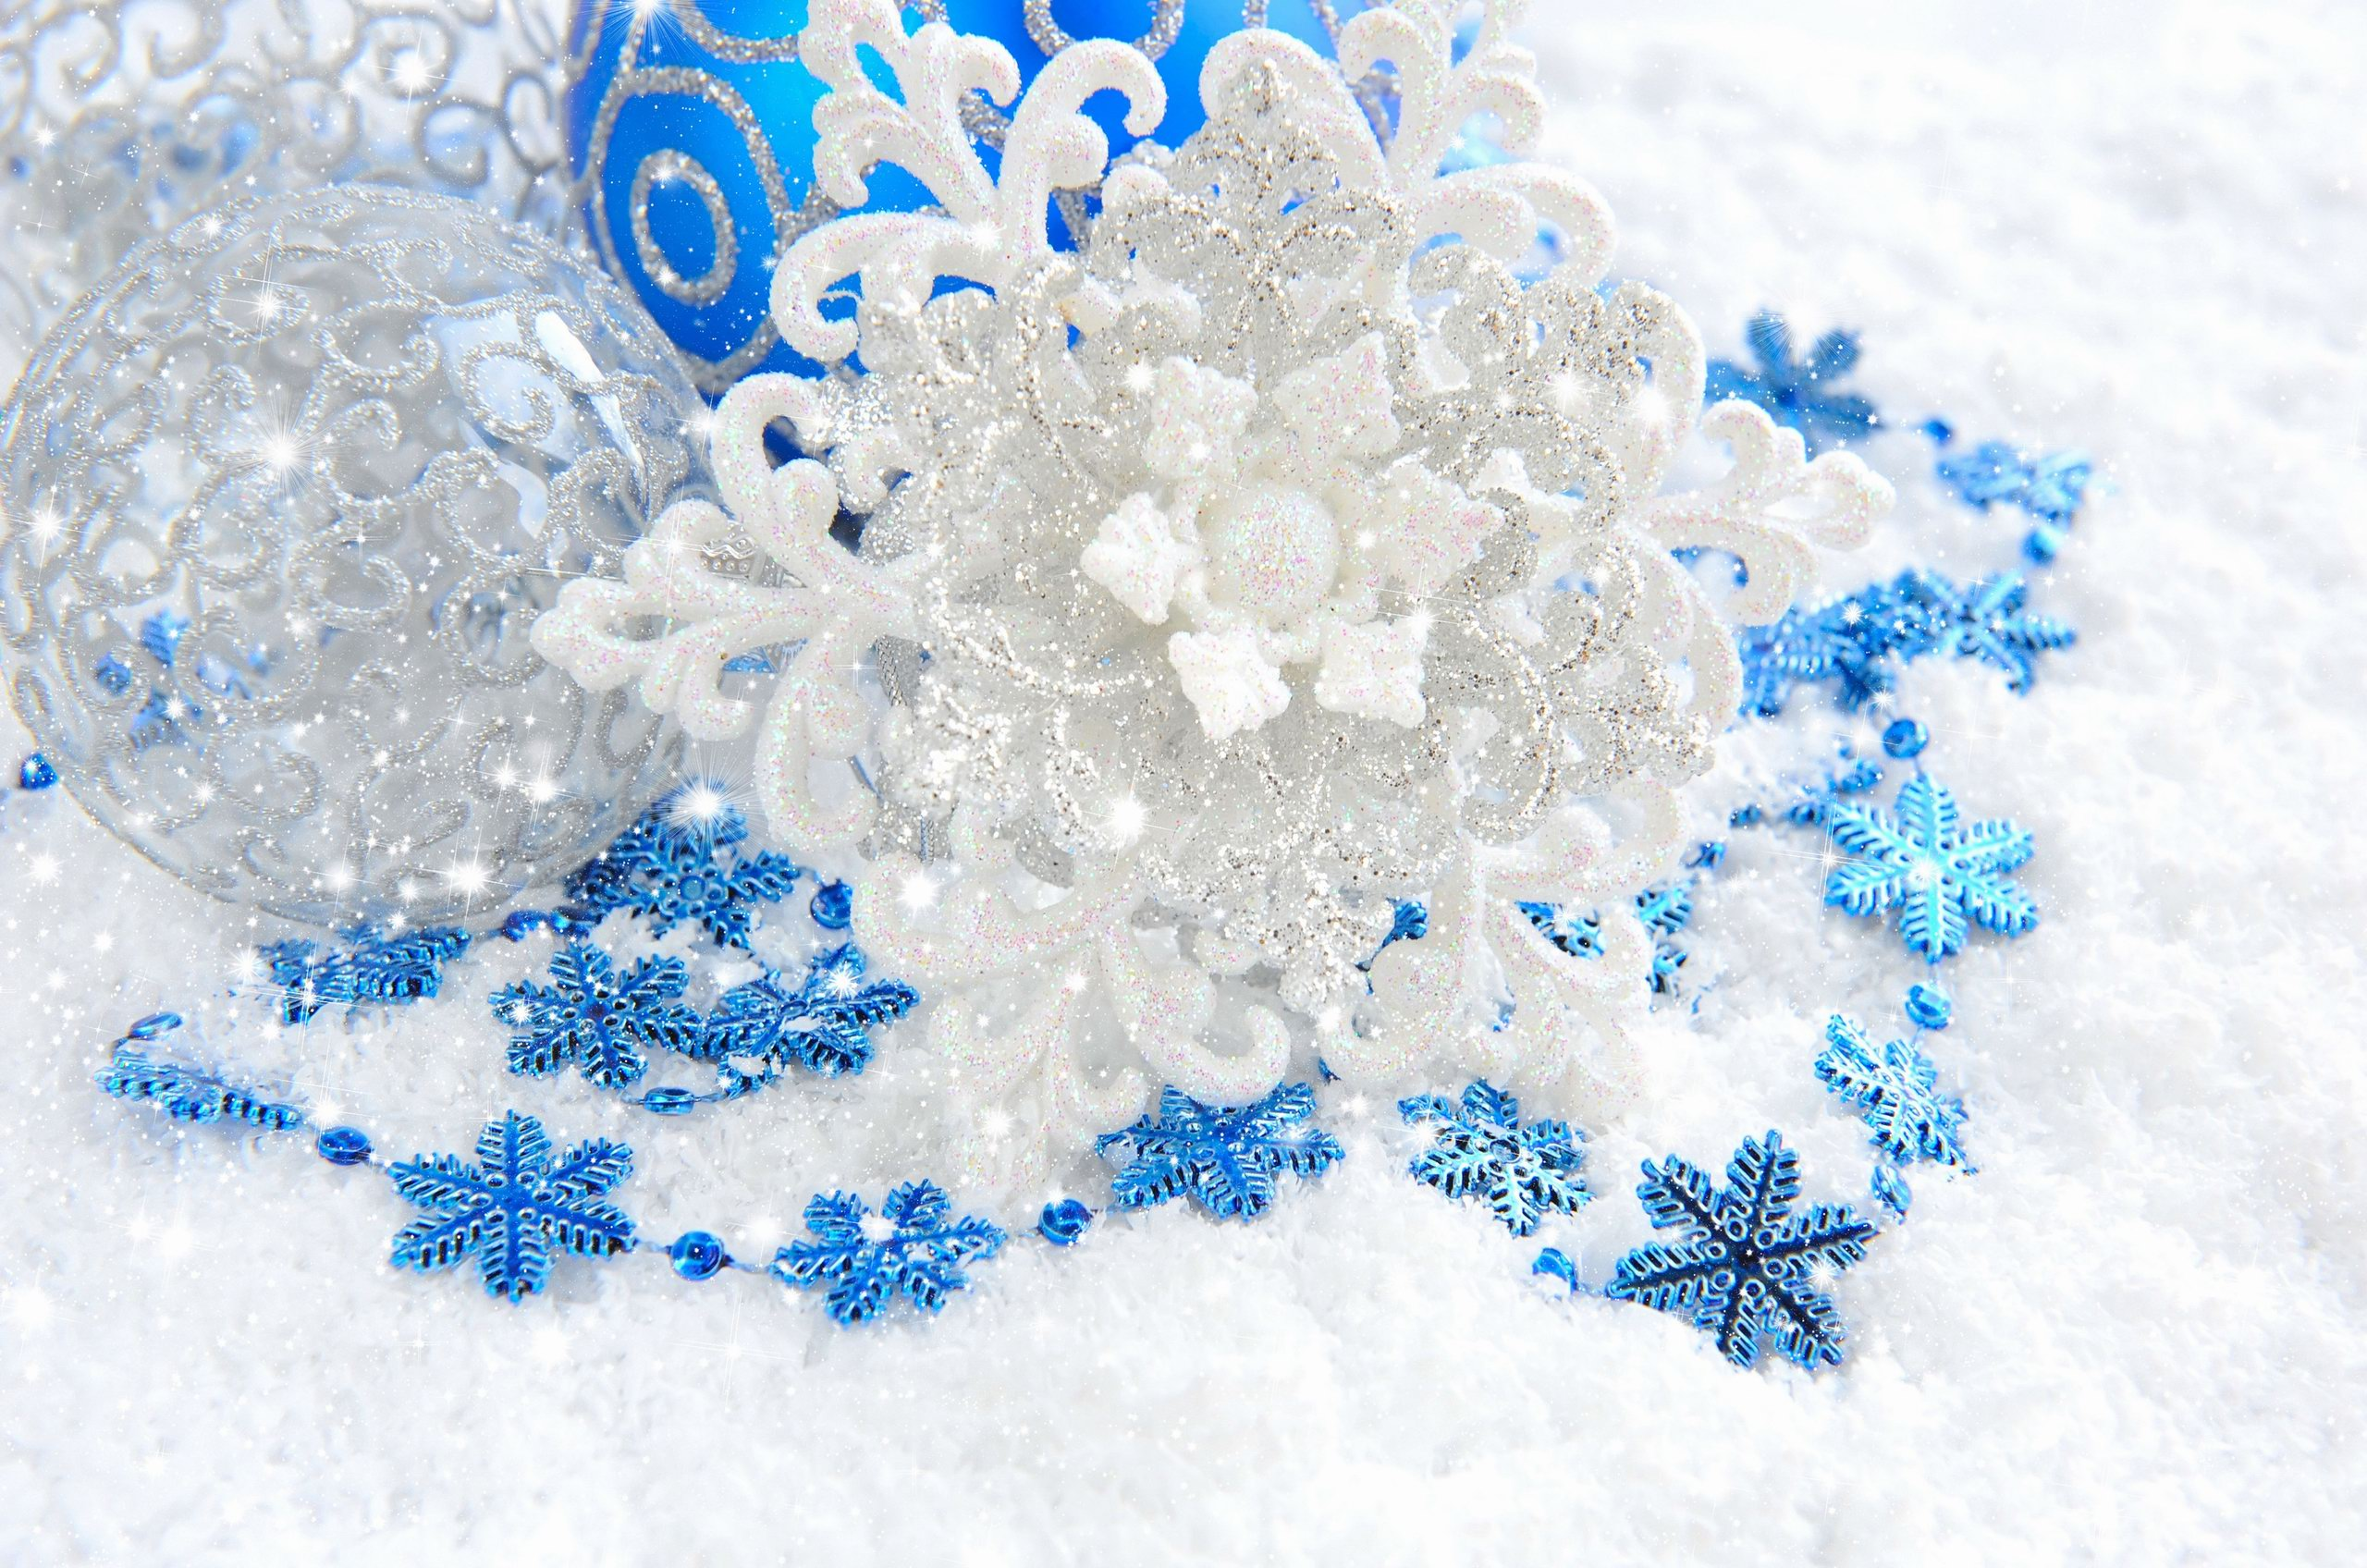 New Year, scenery, Christmas, patterns, Jewelry